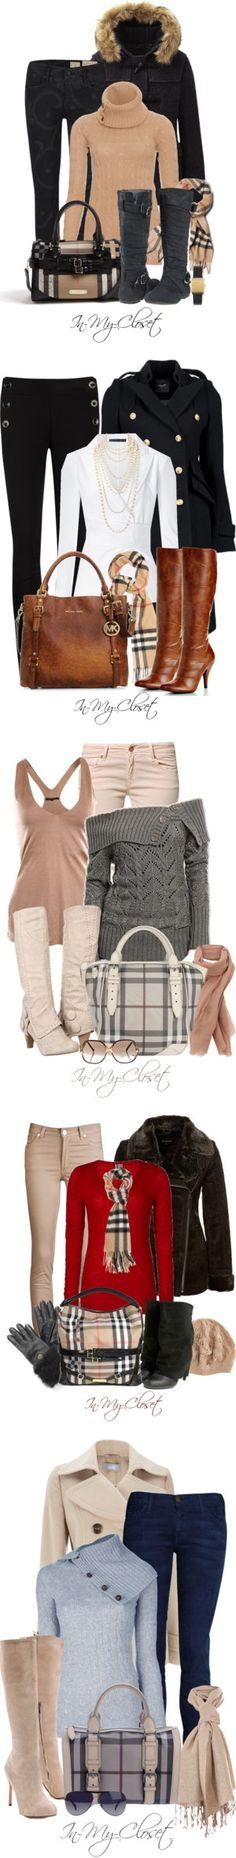 """Burberry!"" by in-my-closet on Polyvore"